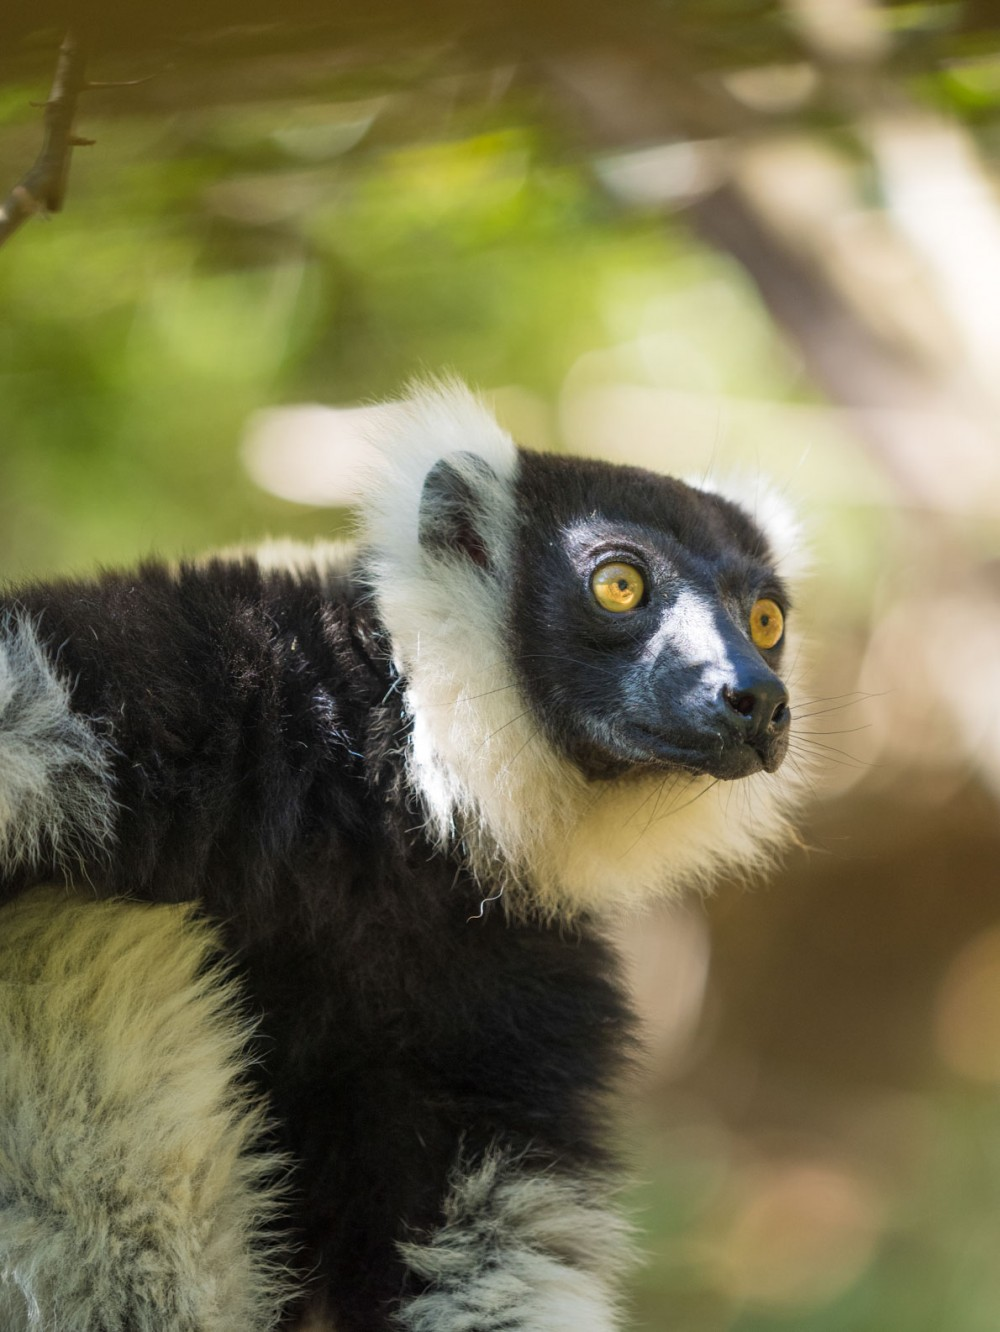 The Critically Endangered Black-and-white ruffed lemur